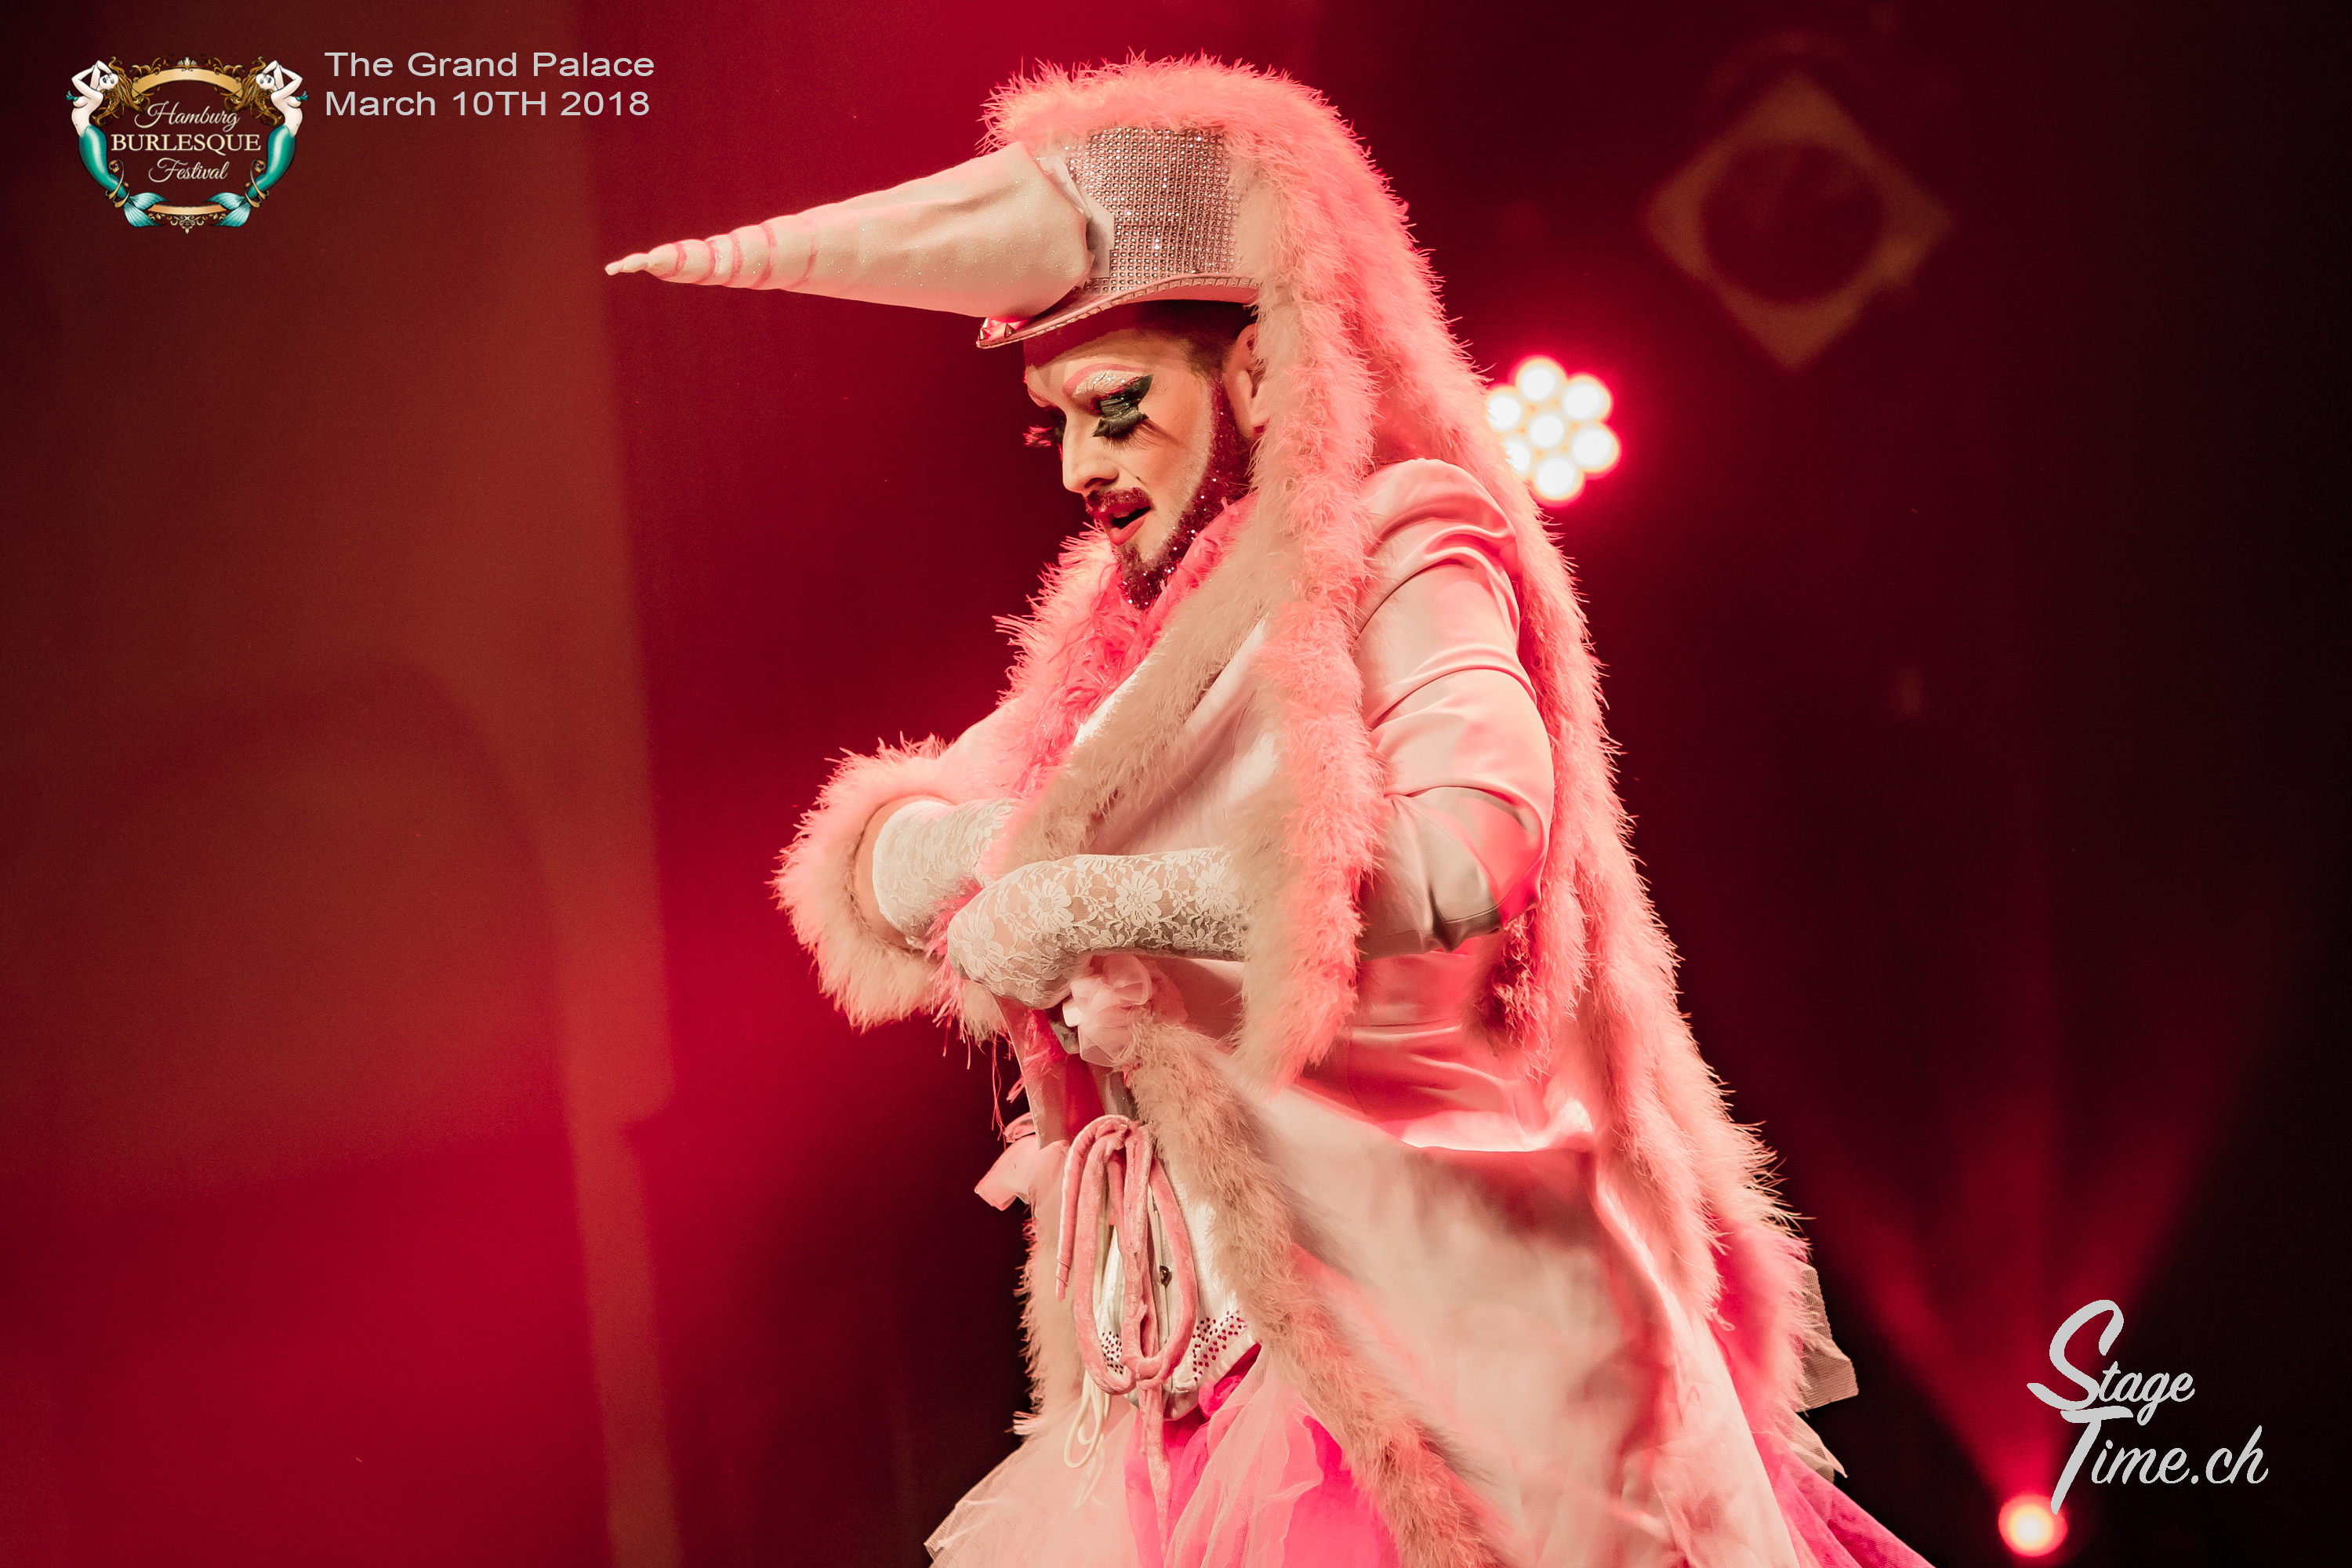 Hamburg_Burlesque_Festival_The_Grand_Palace__📷_Christoph_Gurtner_I_stagetime.ch-57